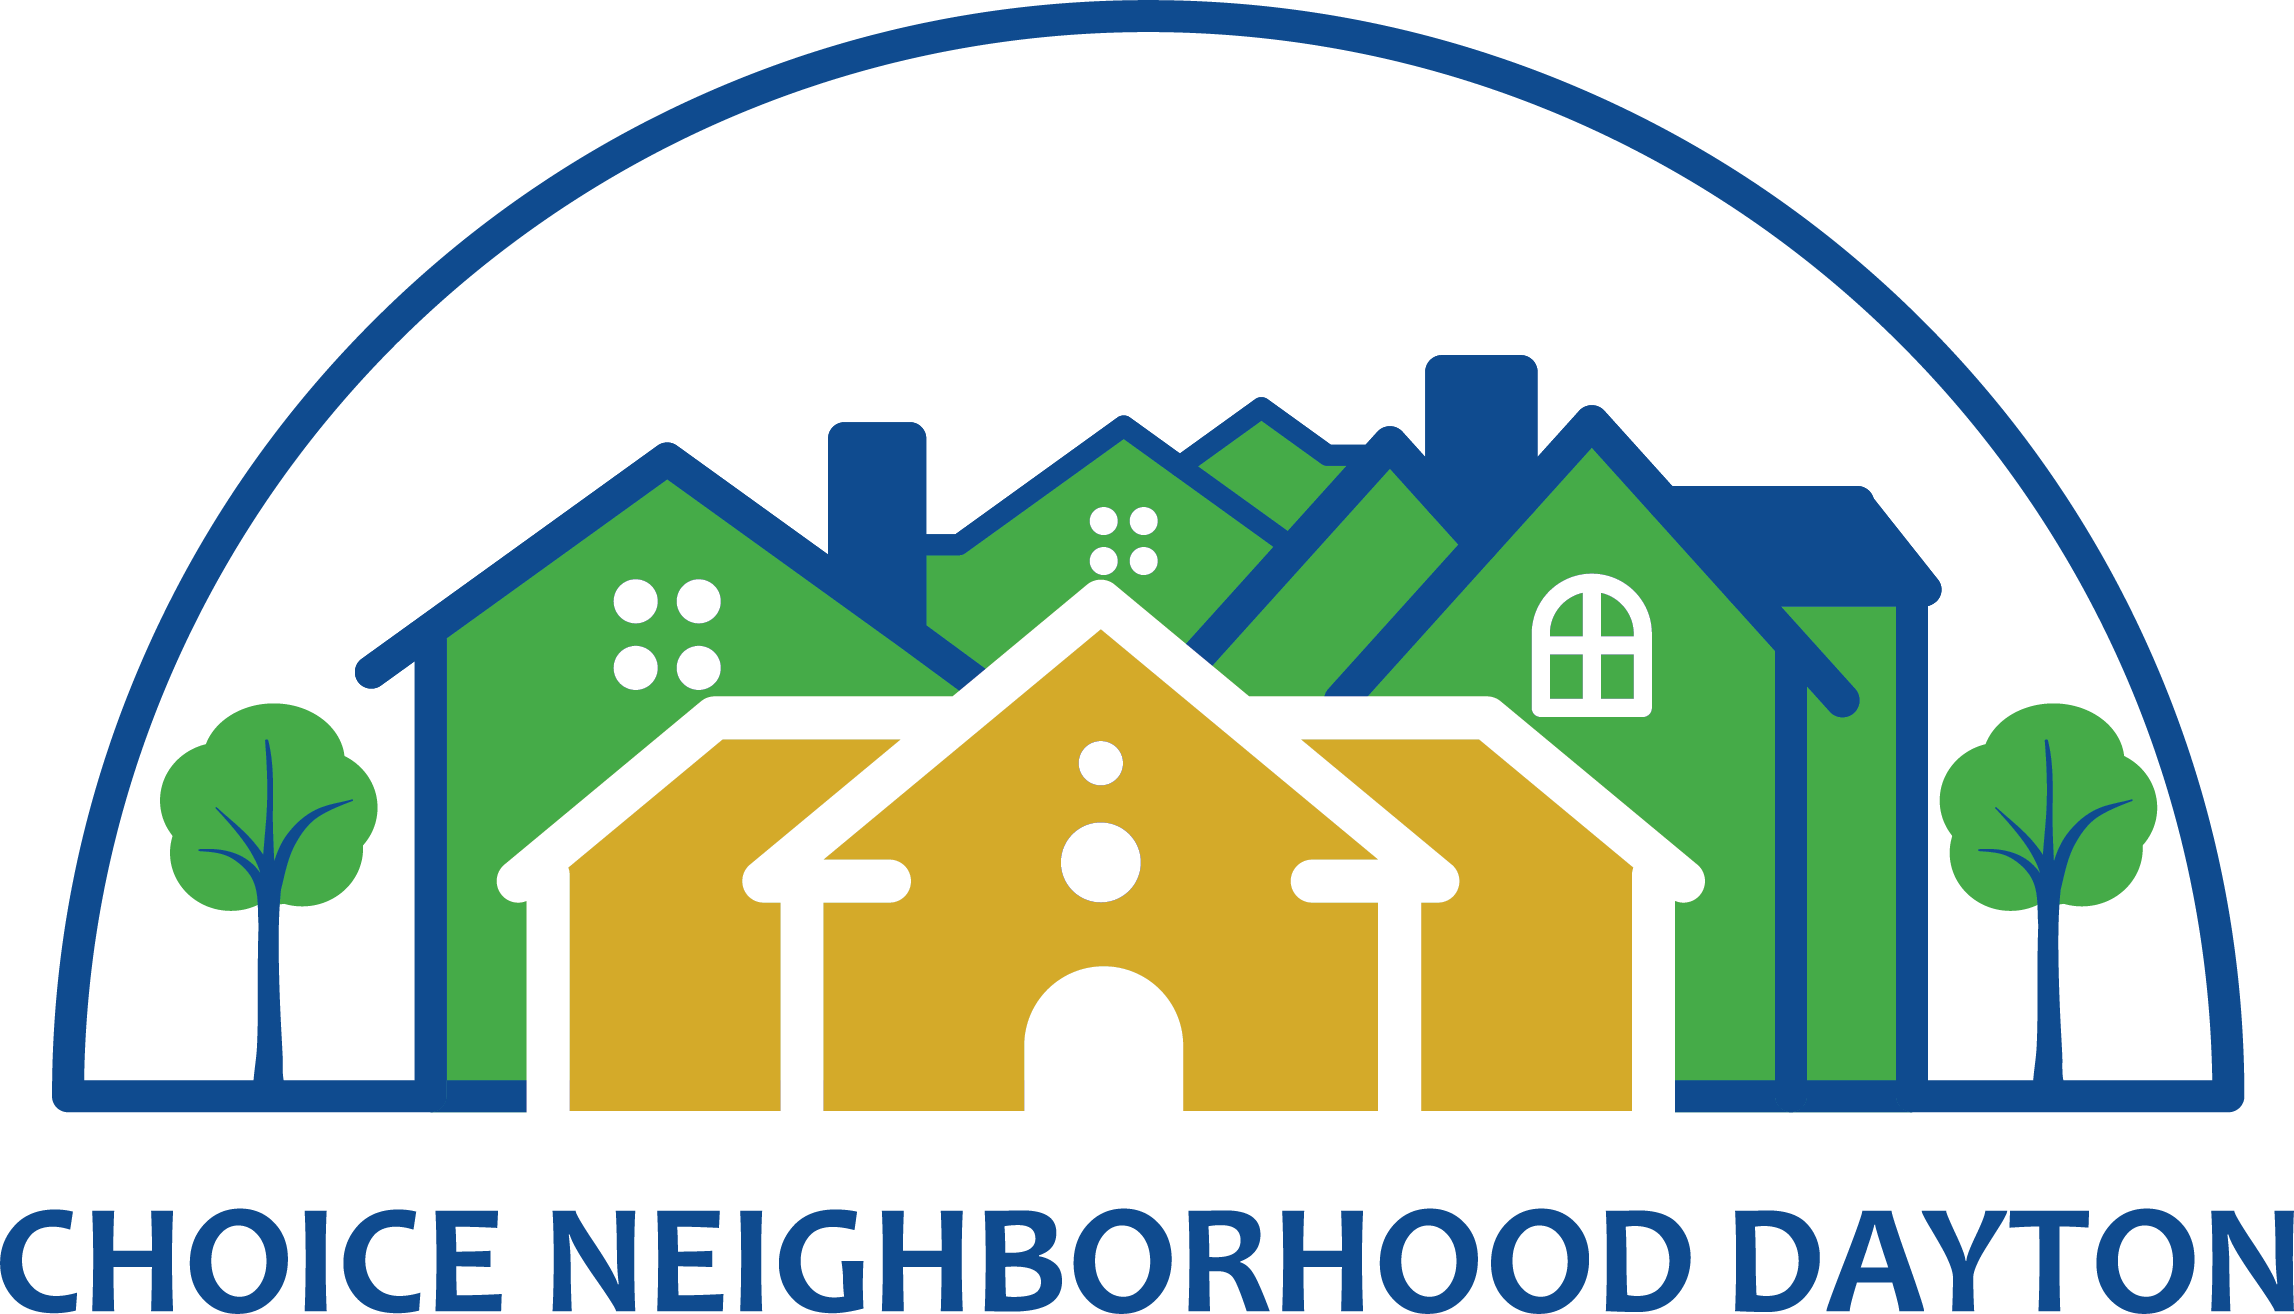 Neighbors clipart housing development. About dayton metropolitan